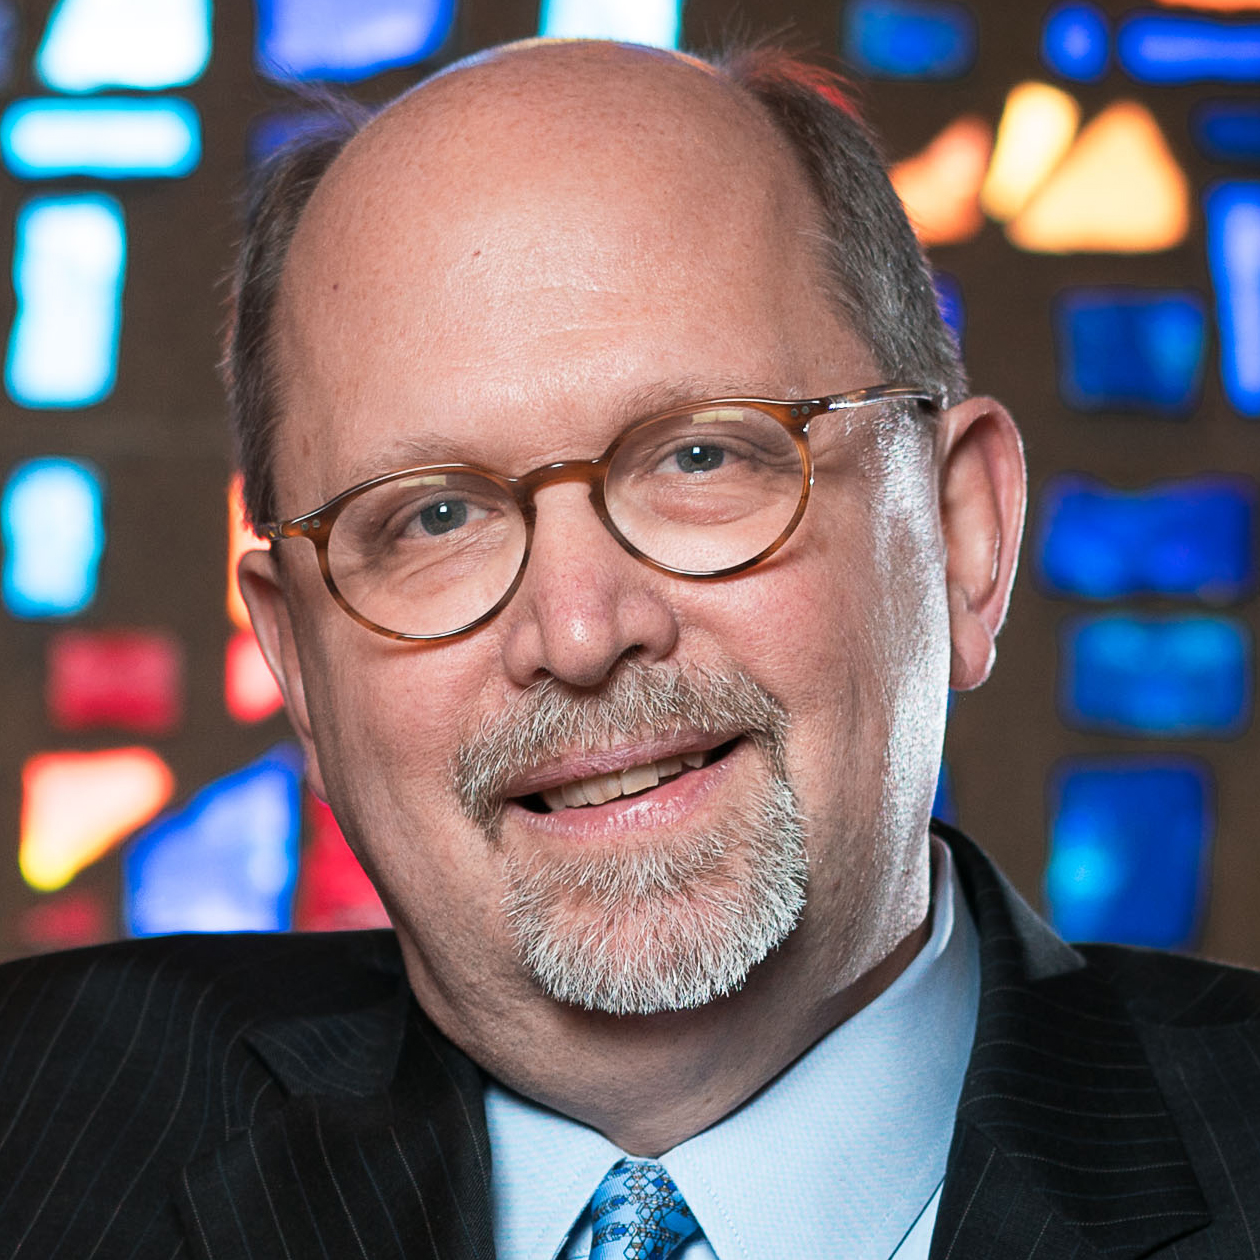 Rev. Mark Fowler